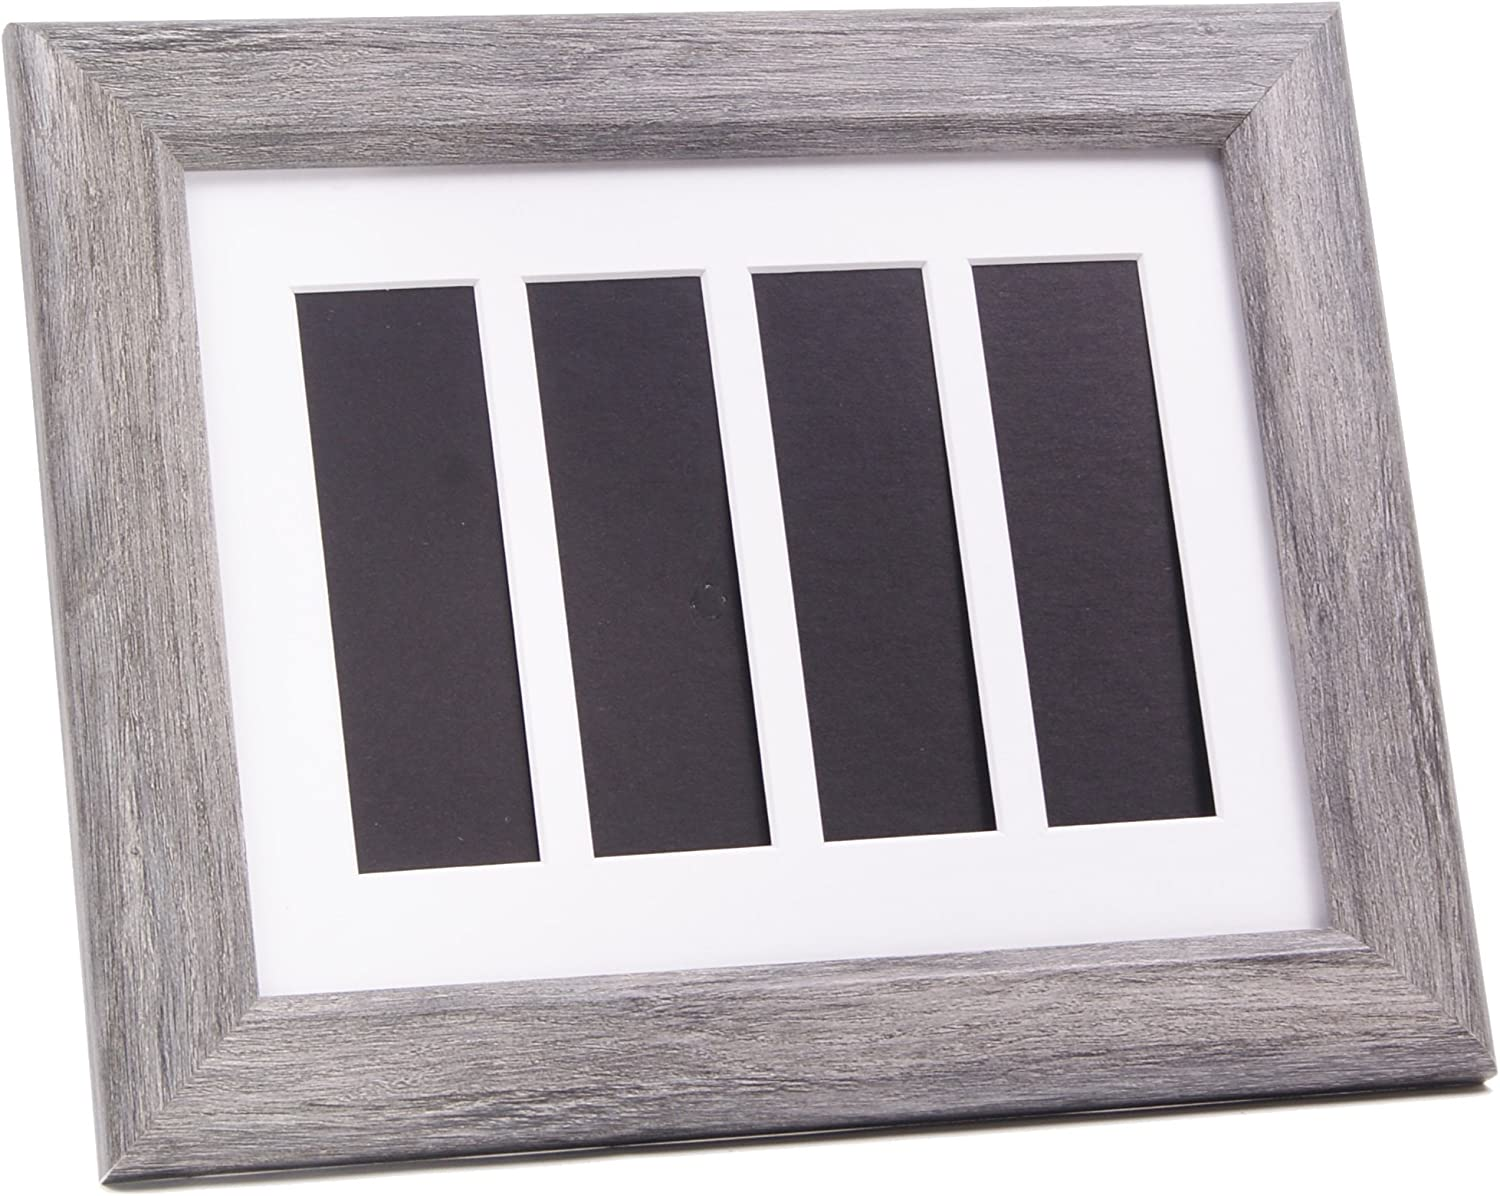 Creativepf Pbw9x11dw W Driftwood Wedding Photo Booth Frame Holds 4 2x6 With White Mat To Display Cherish And Preserve Your Wedding Memories